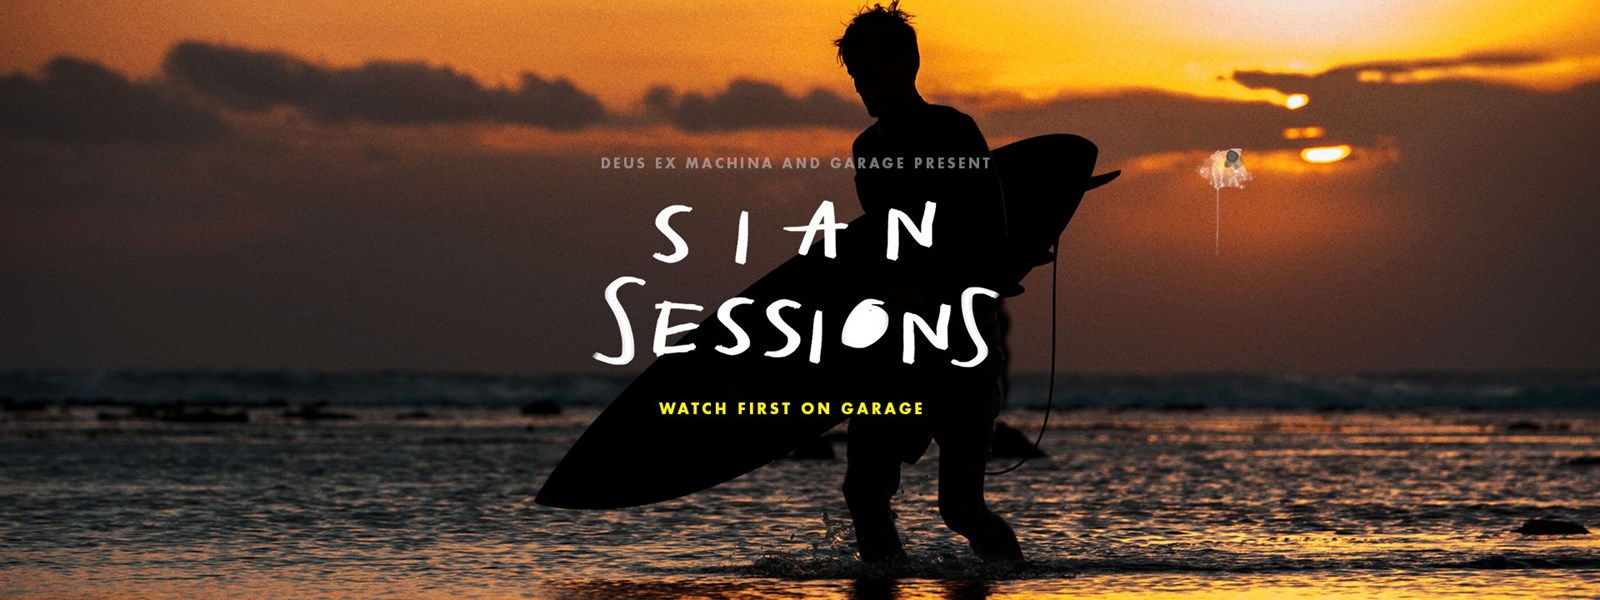 Sian Sessions